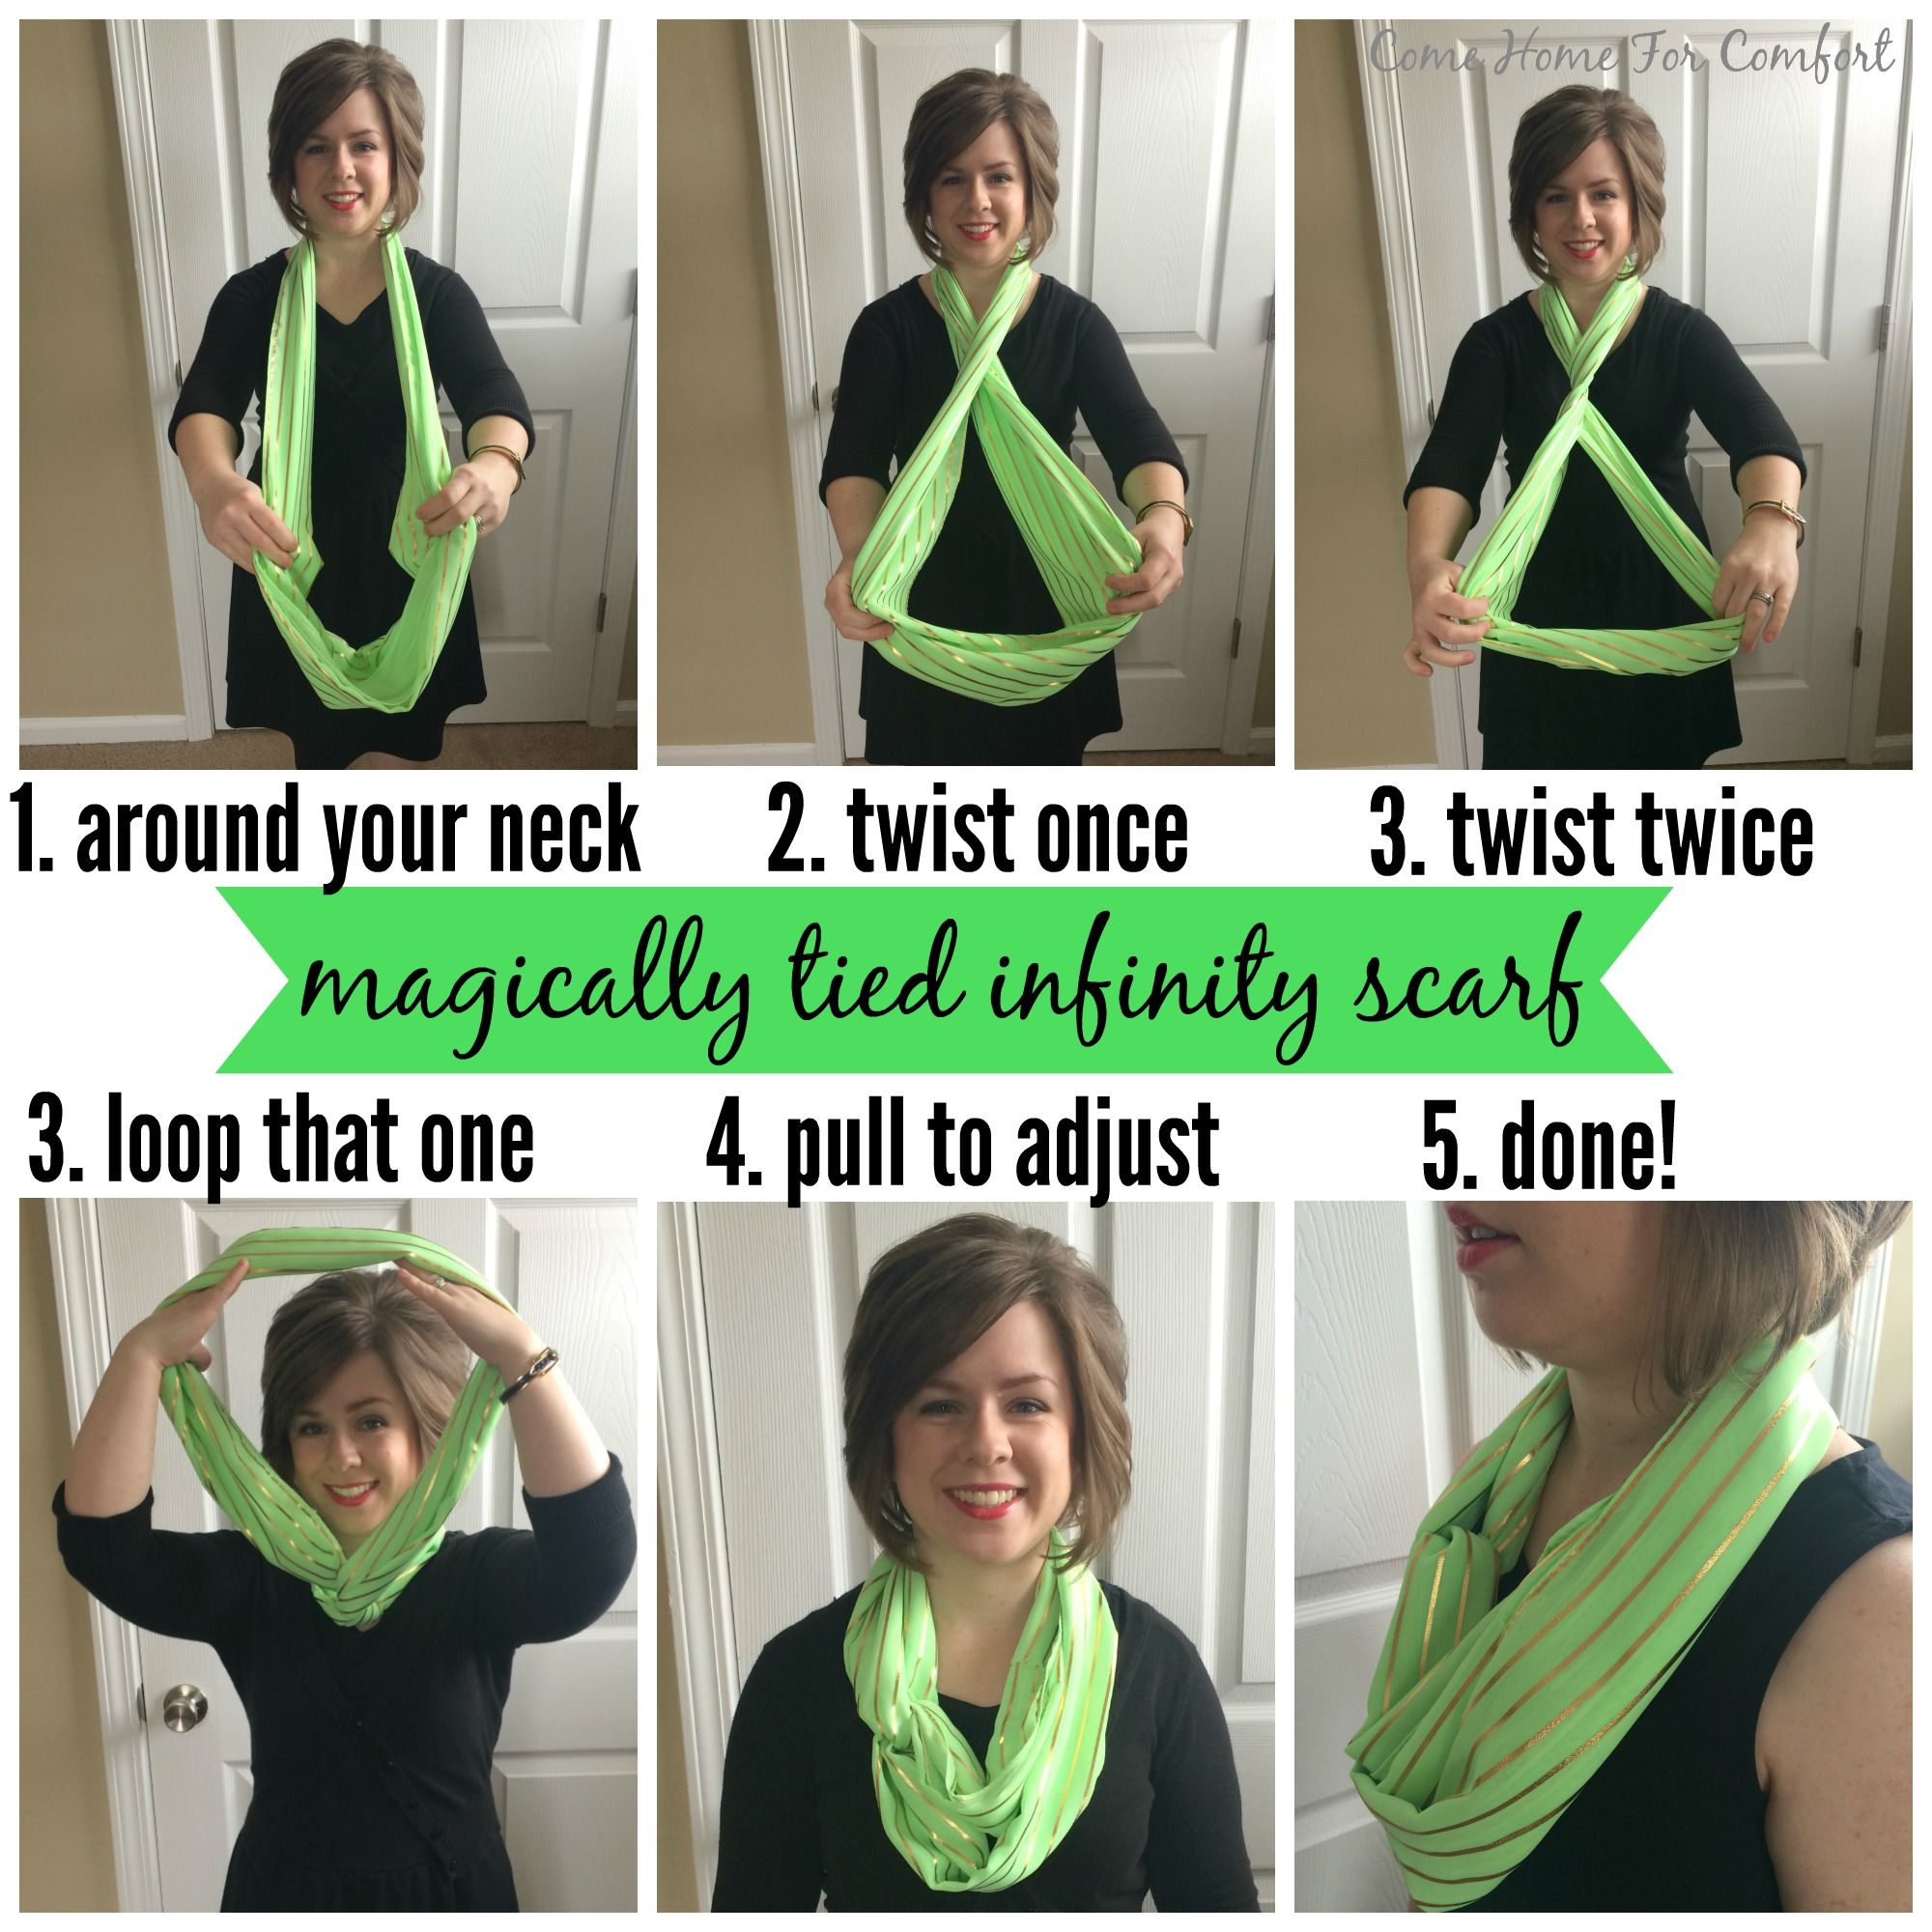 How To Tie A The Doublewrap Double Windsor Knot Wear Infinity Scarves Without All Bulk Outfit Ideas Bulkiness Via Comehomeforcomfortcom